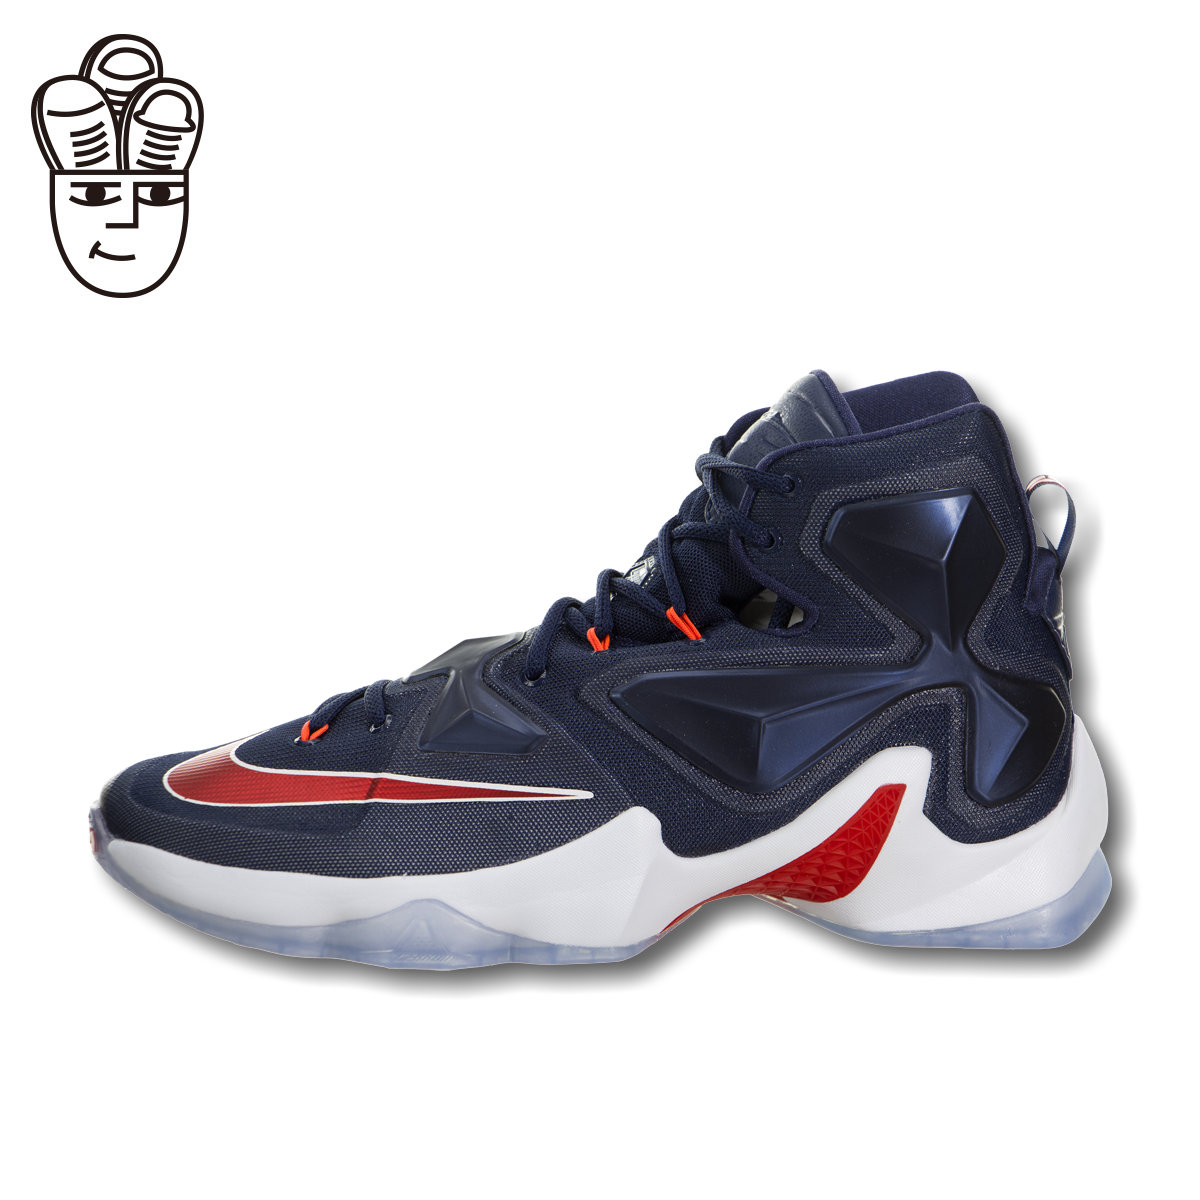 4dcb522a53f Get Quotations · Nike lebron nike decision xiii reeboks men s professional basketball  shoes lebron james 13th generations